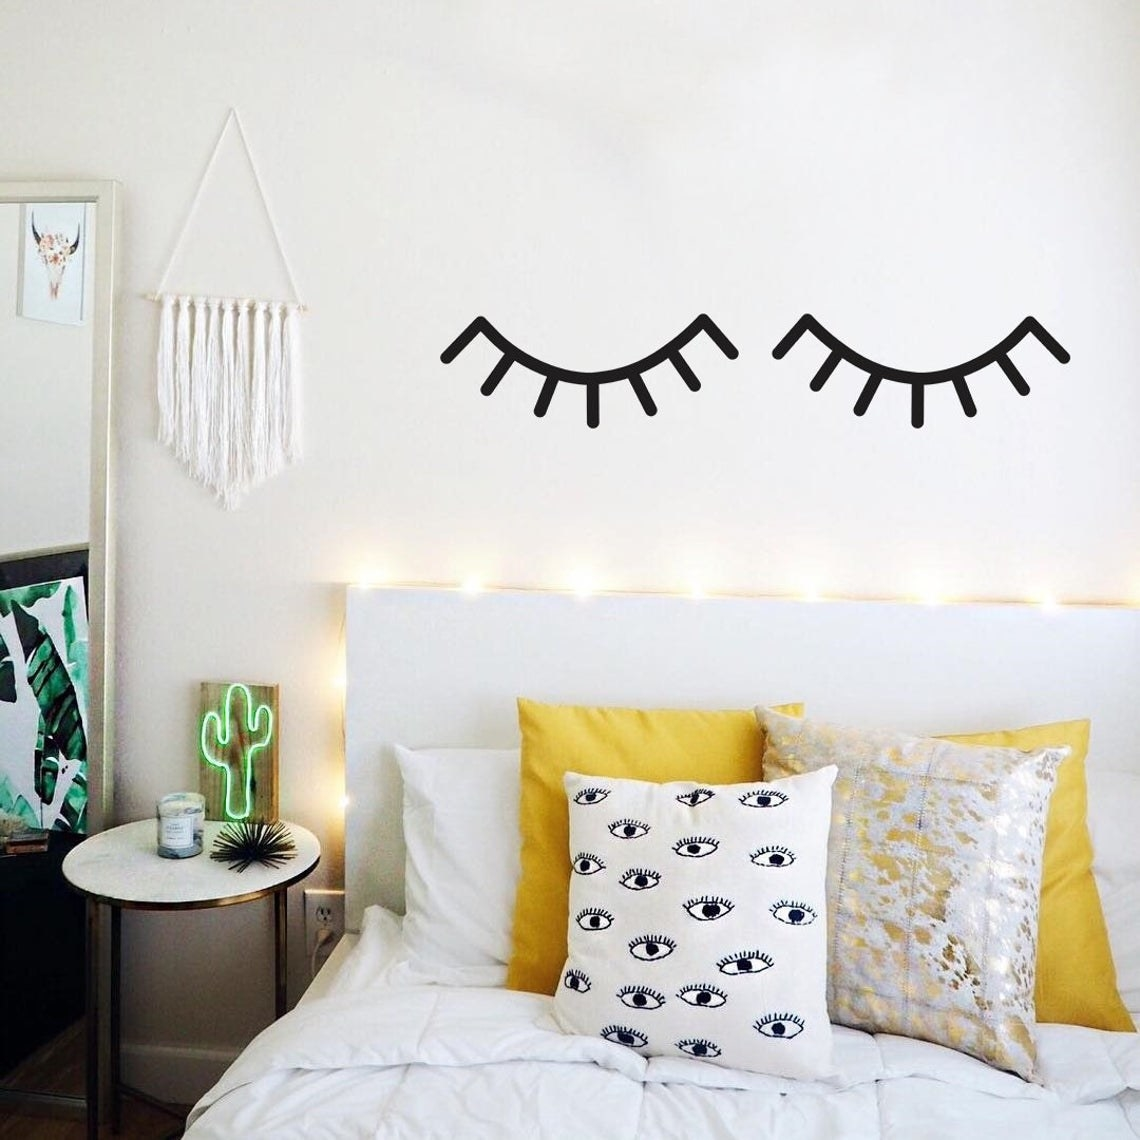 The sleepy eye wall decals above a bed